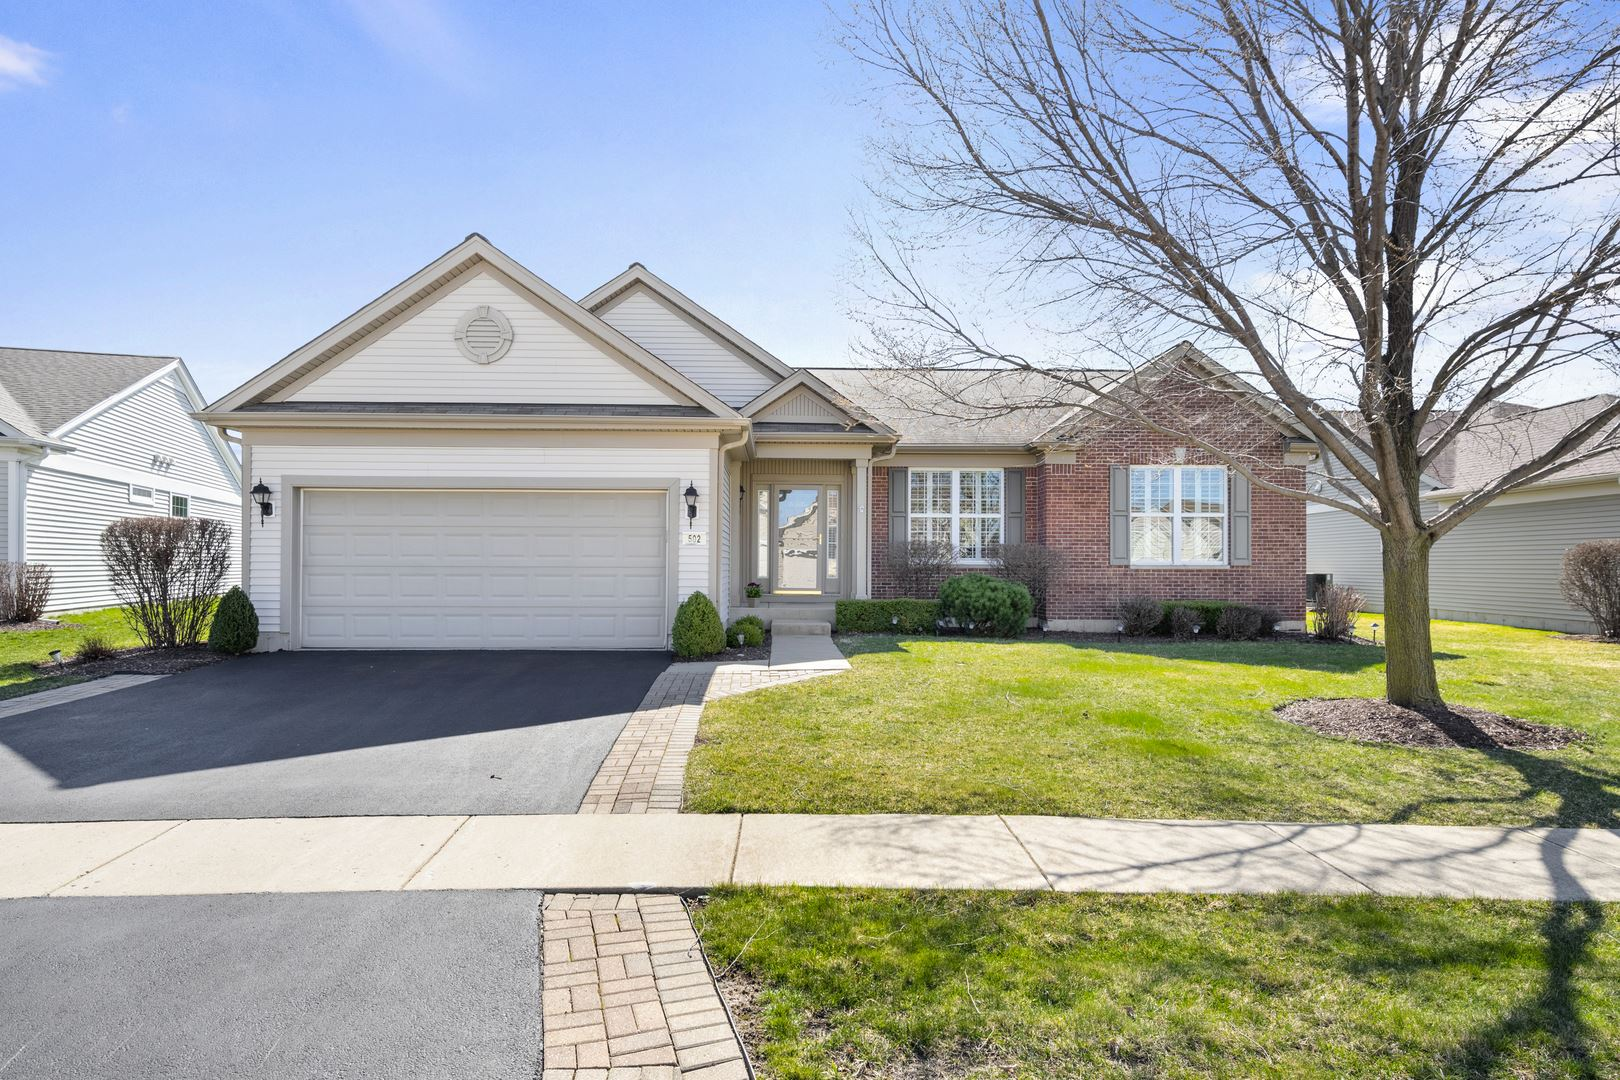 Photo of 502 Honors Court, Shorewood, IL 60404 (MLS # 11042138)